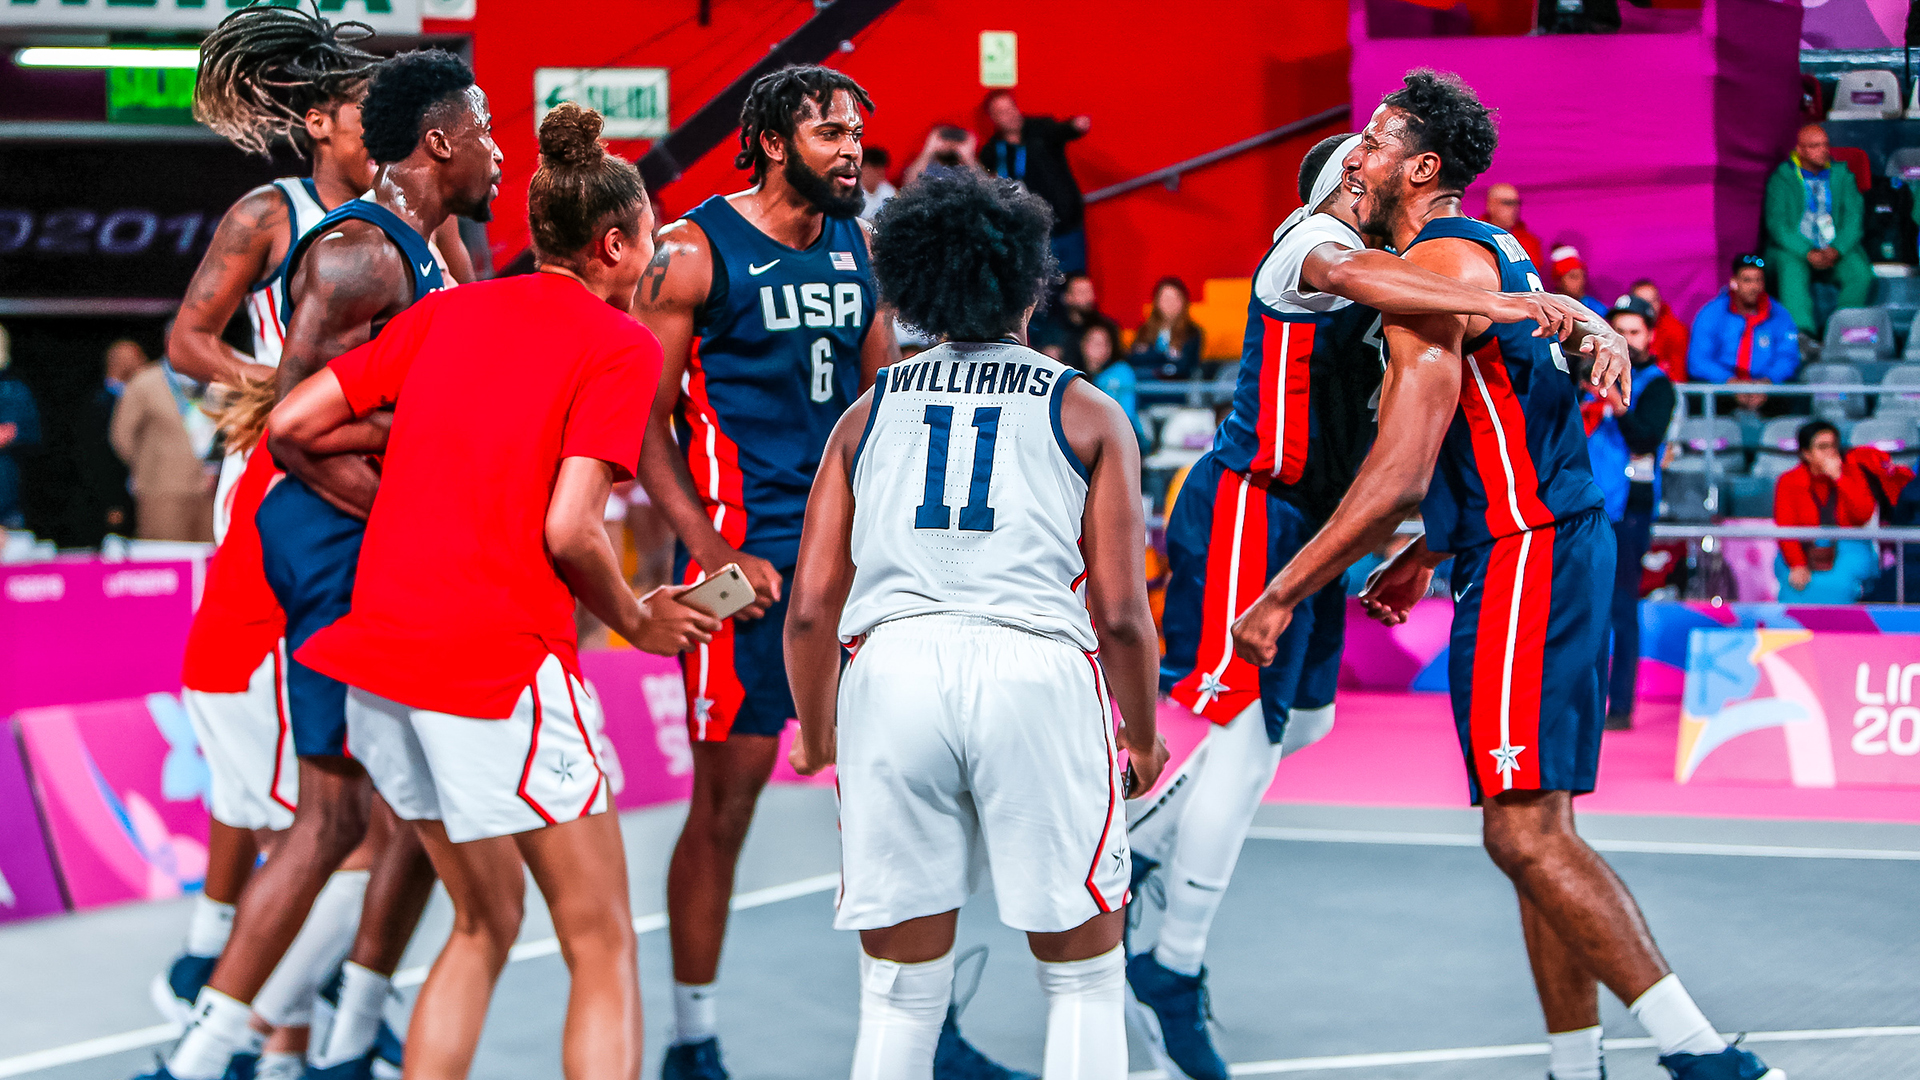 2019 U.S. Pan American Games 3x3 Teams